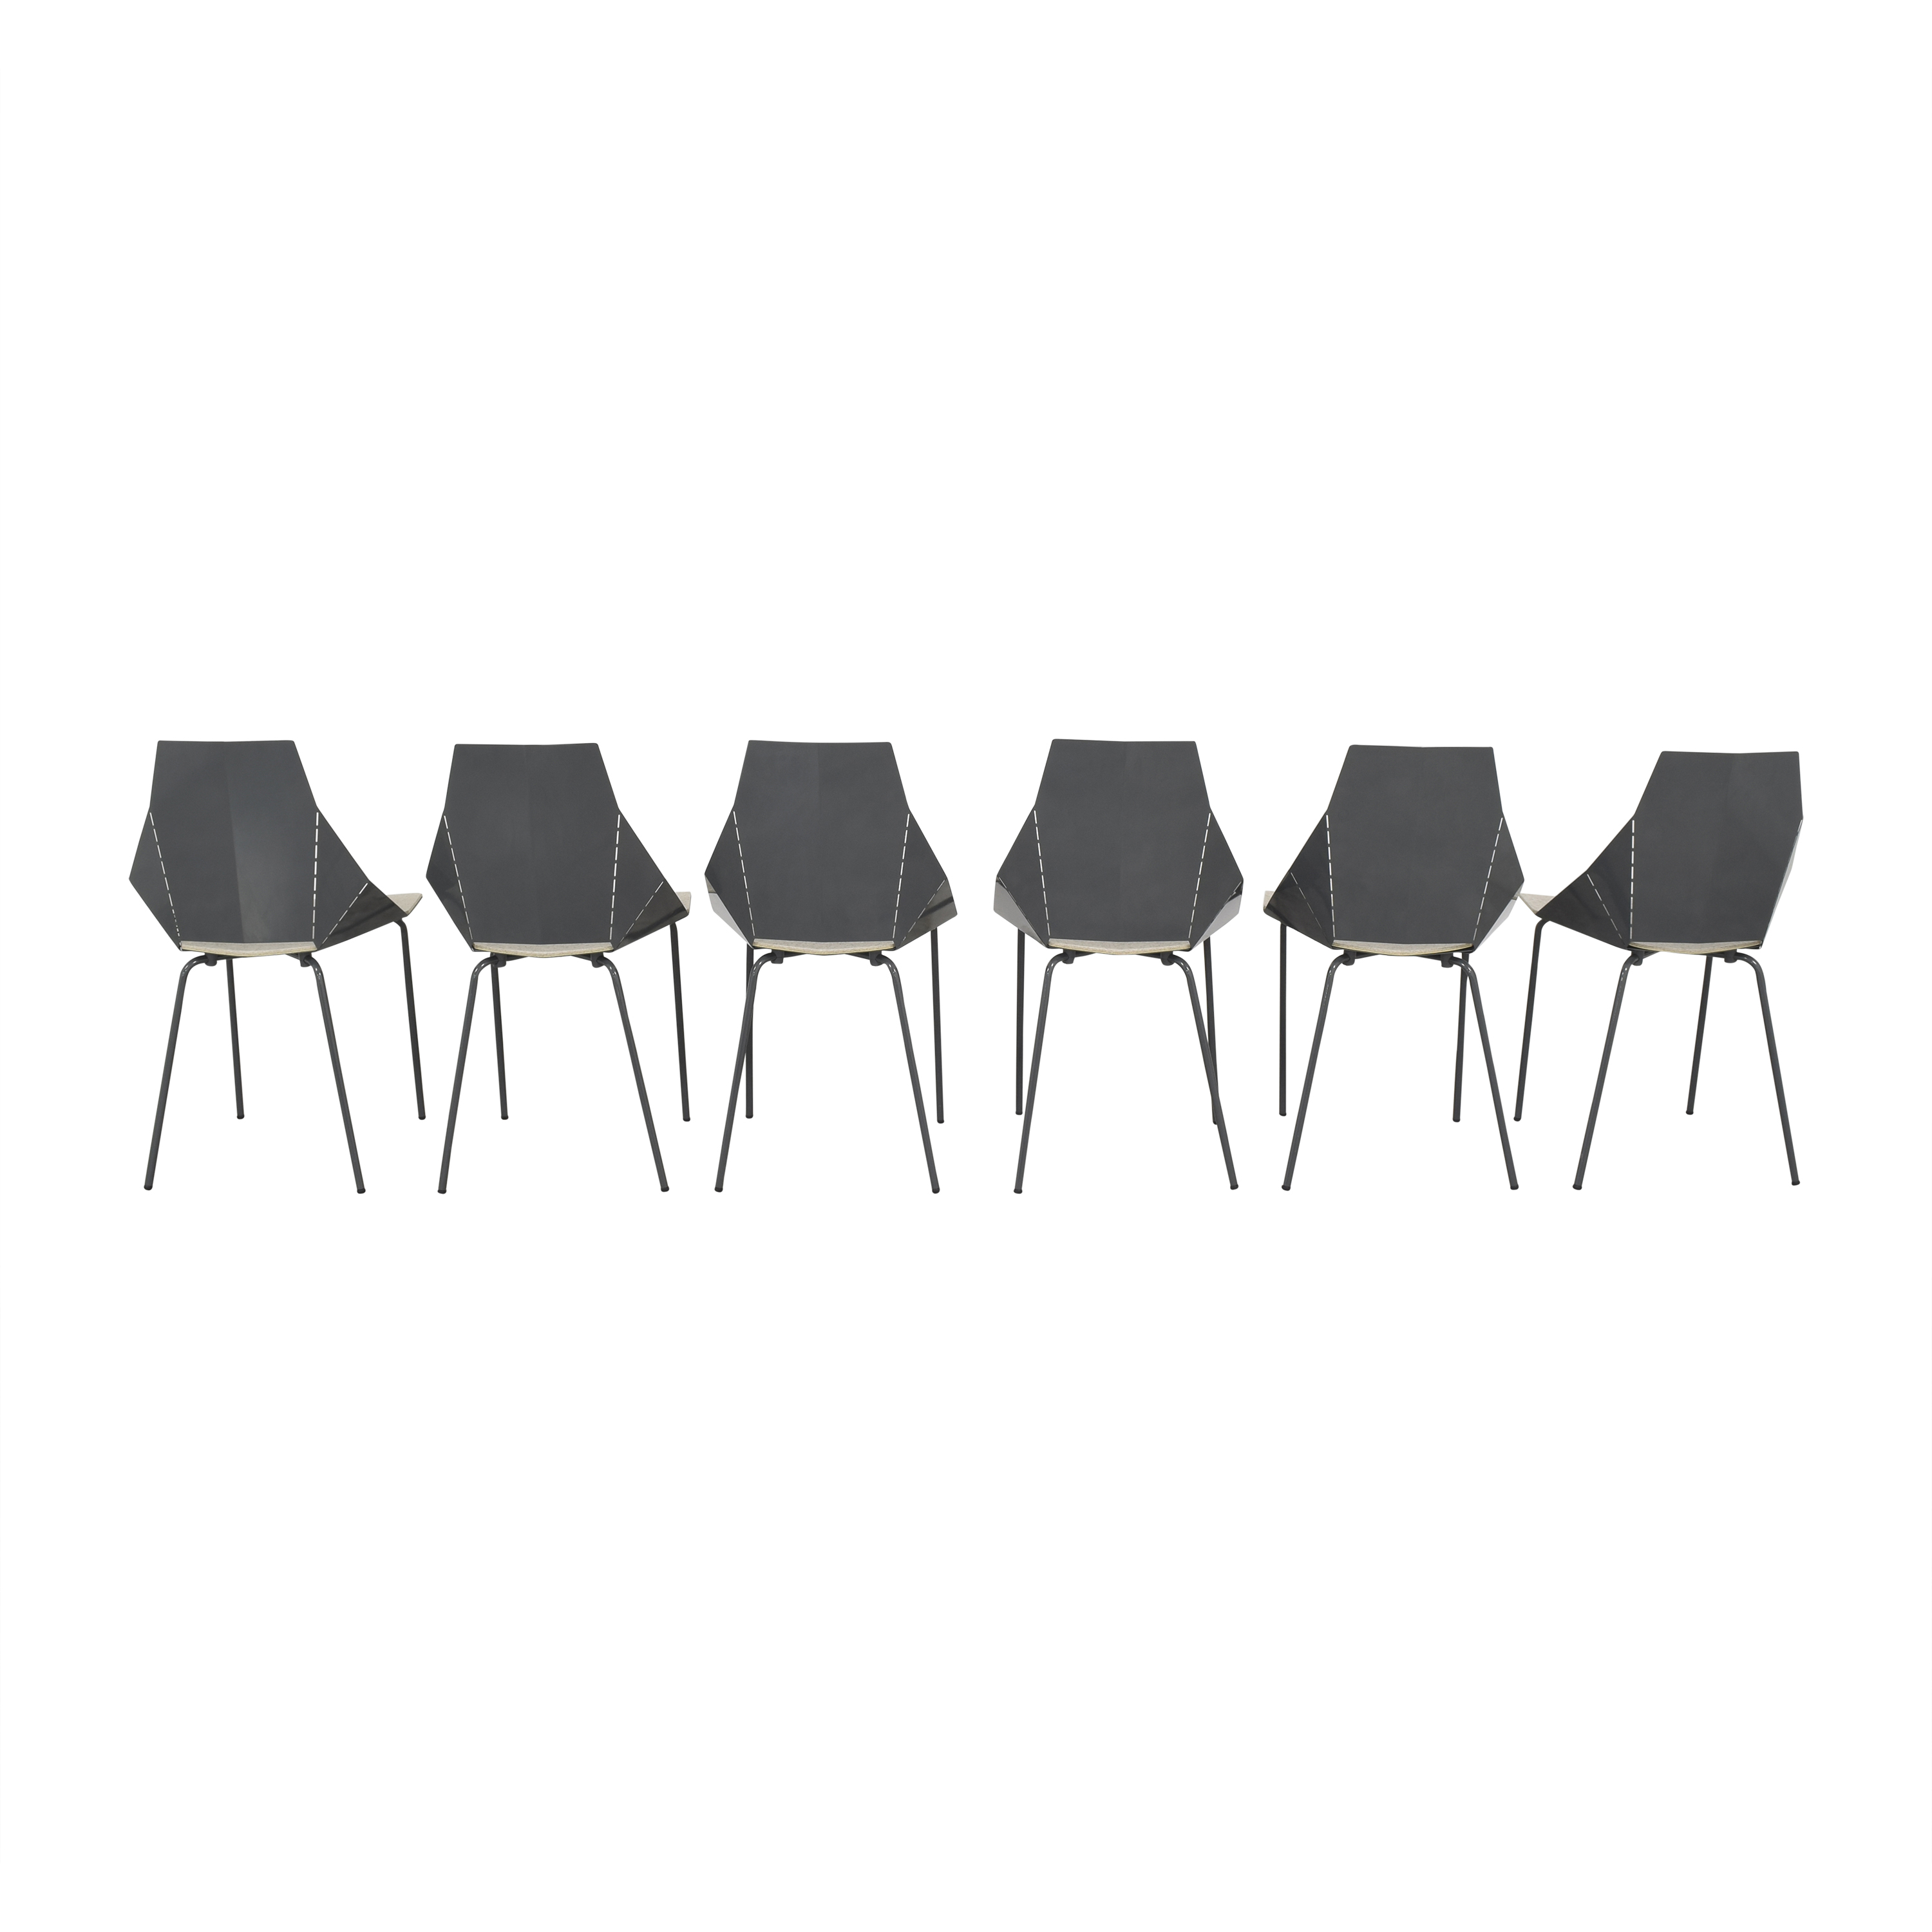 Blu Dot Real Good Chairs with Chair Pads / Dining Chairs